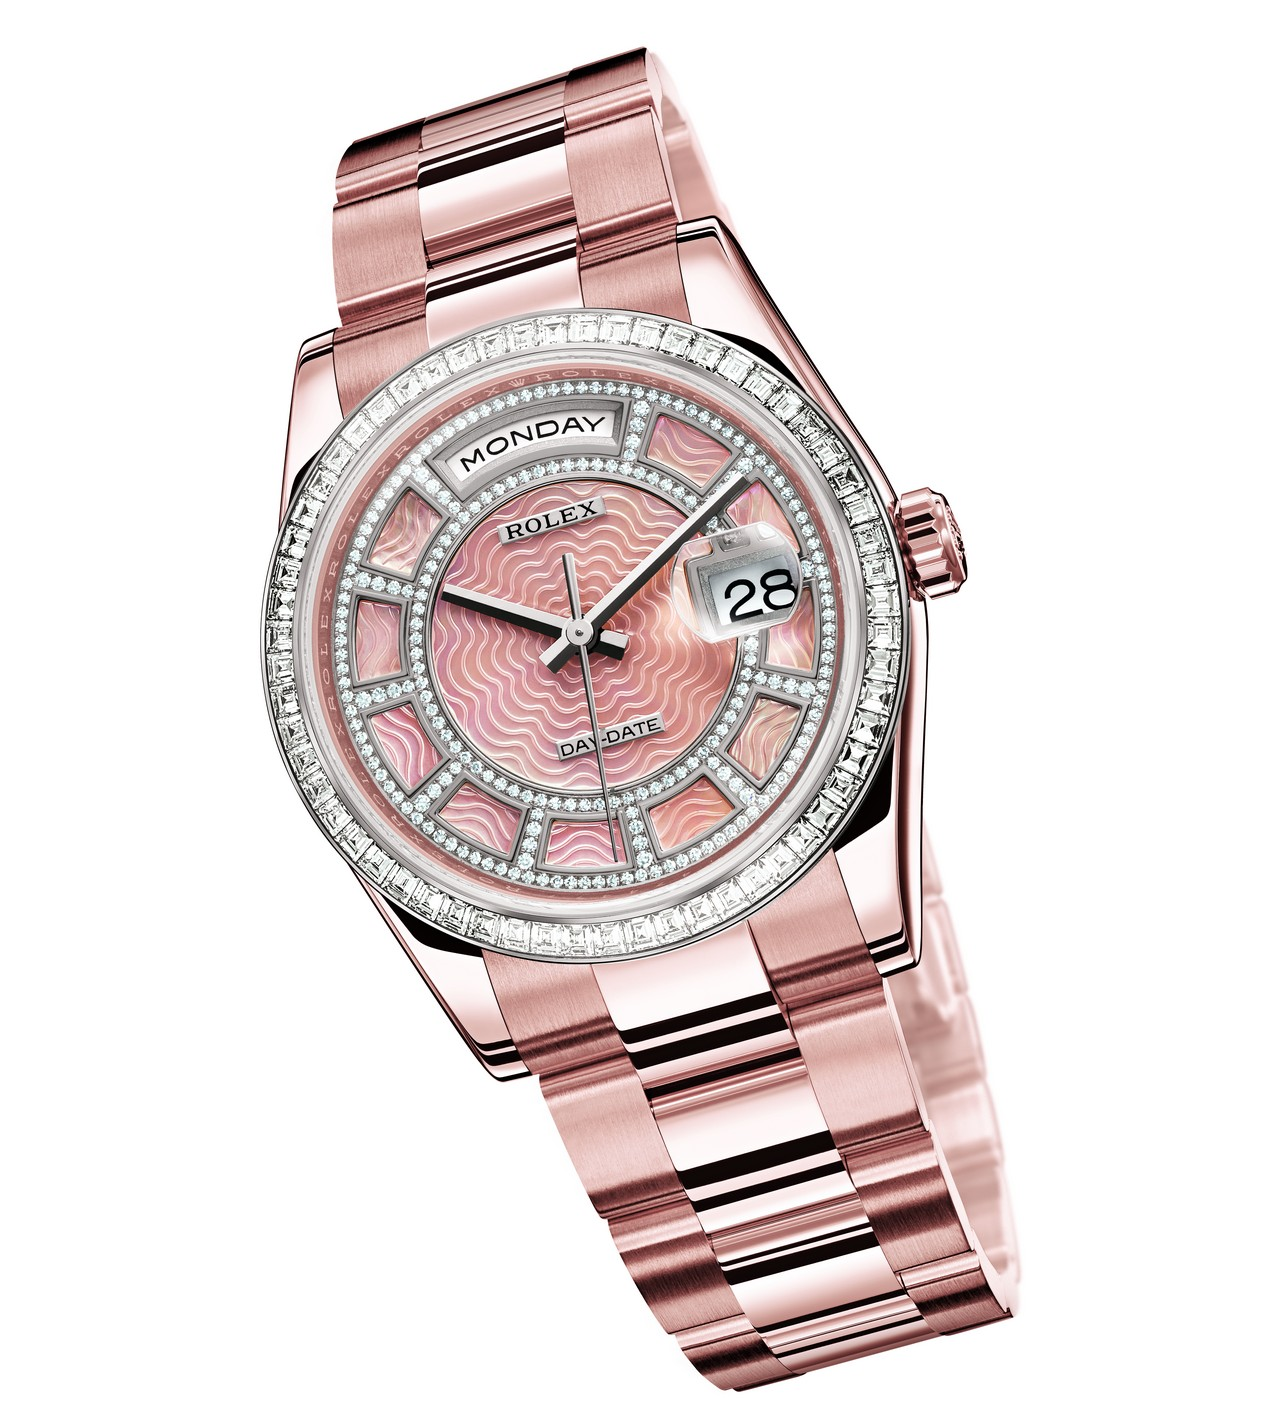 baselworld-2013-oyster-perpetual-day-date-sertie_0-100_5